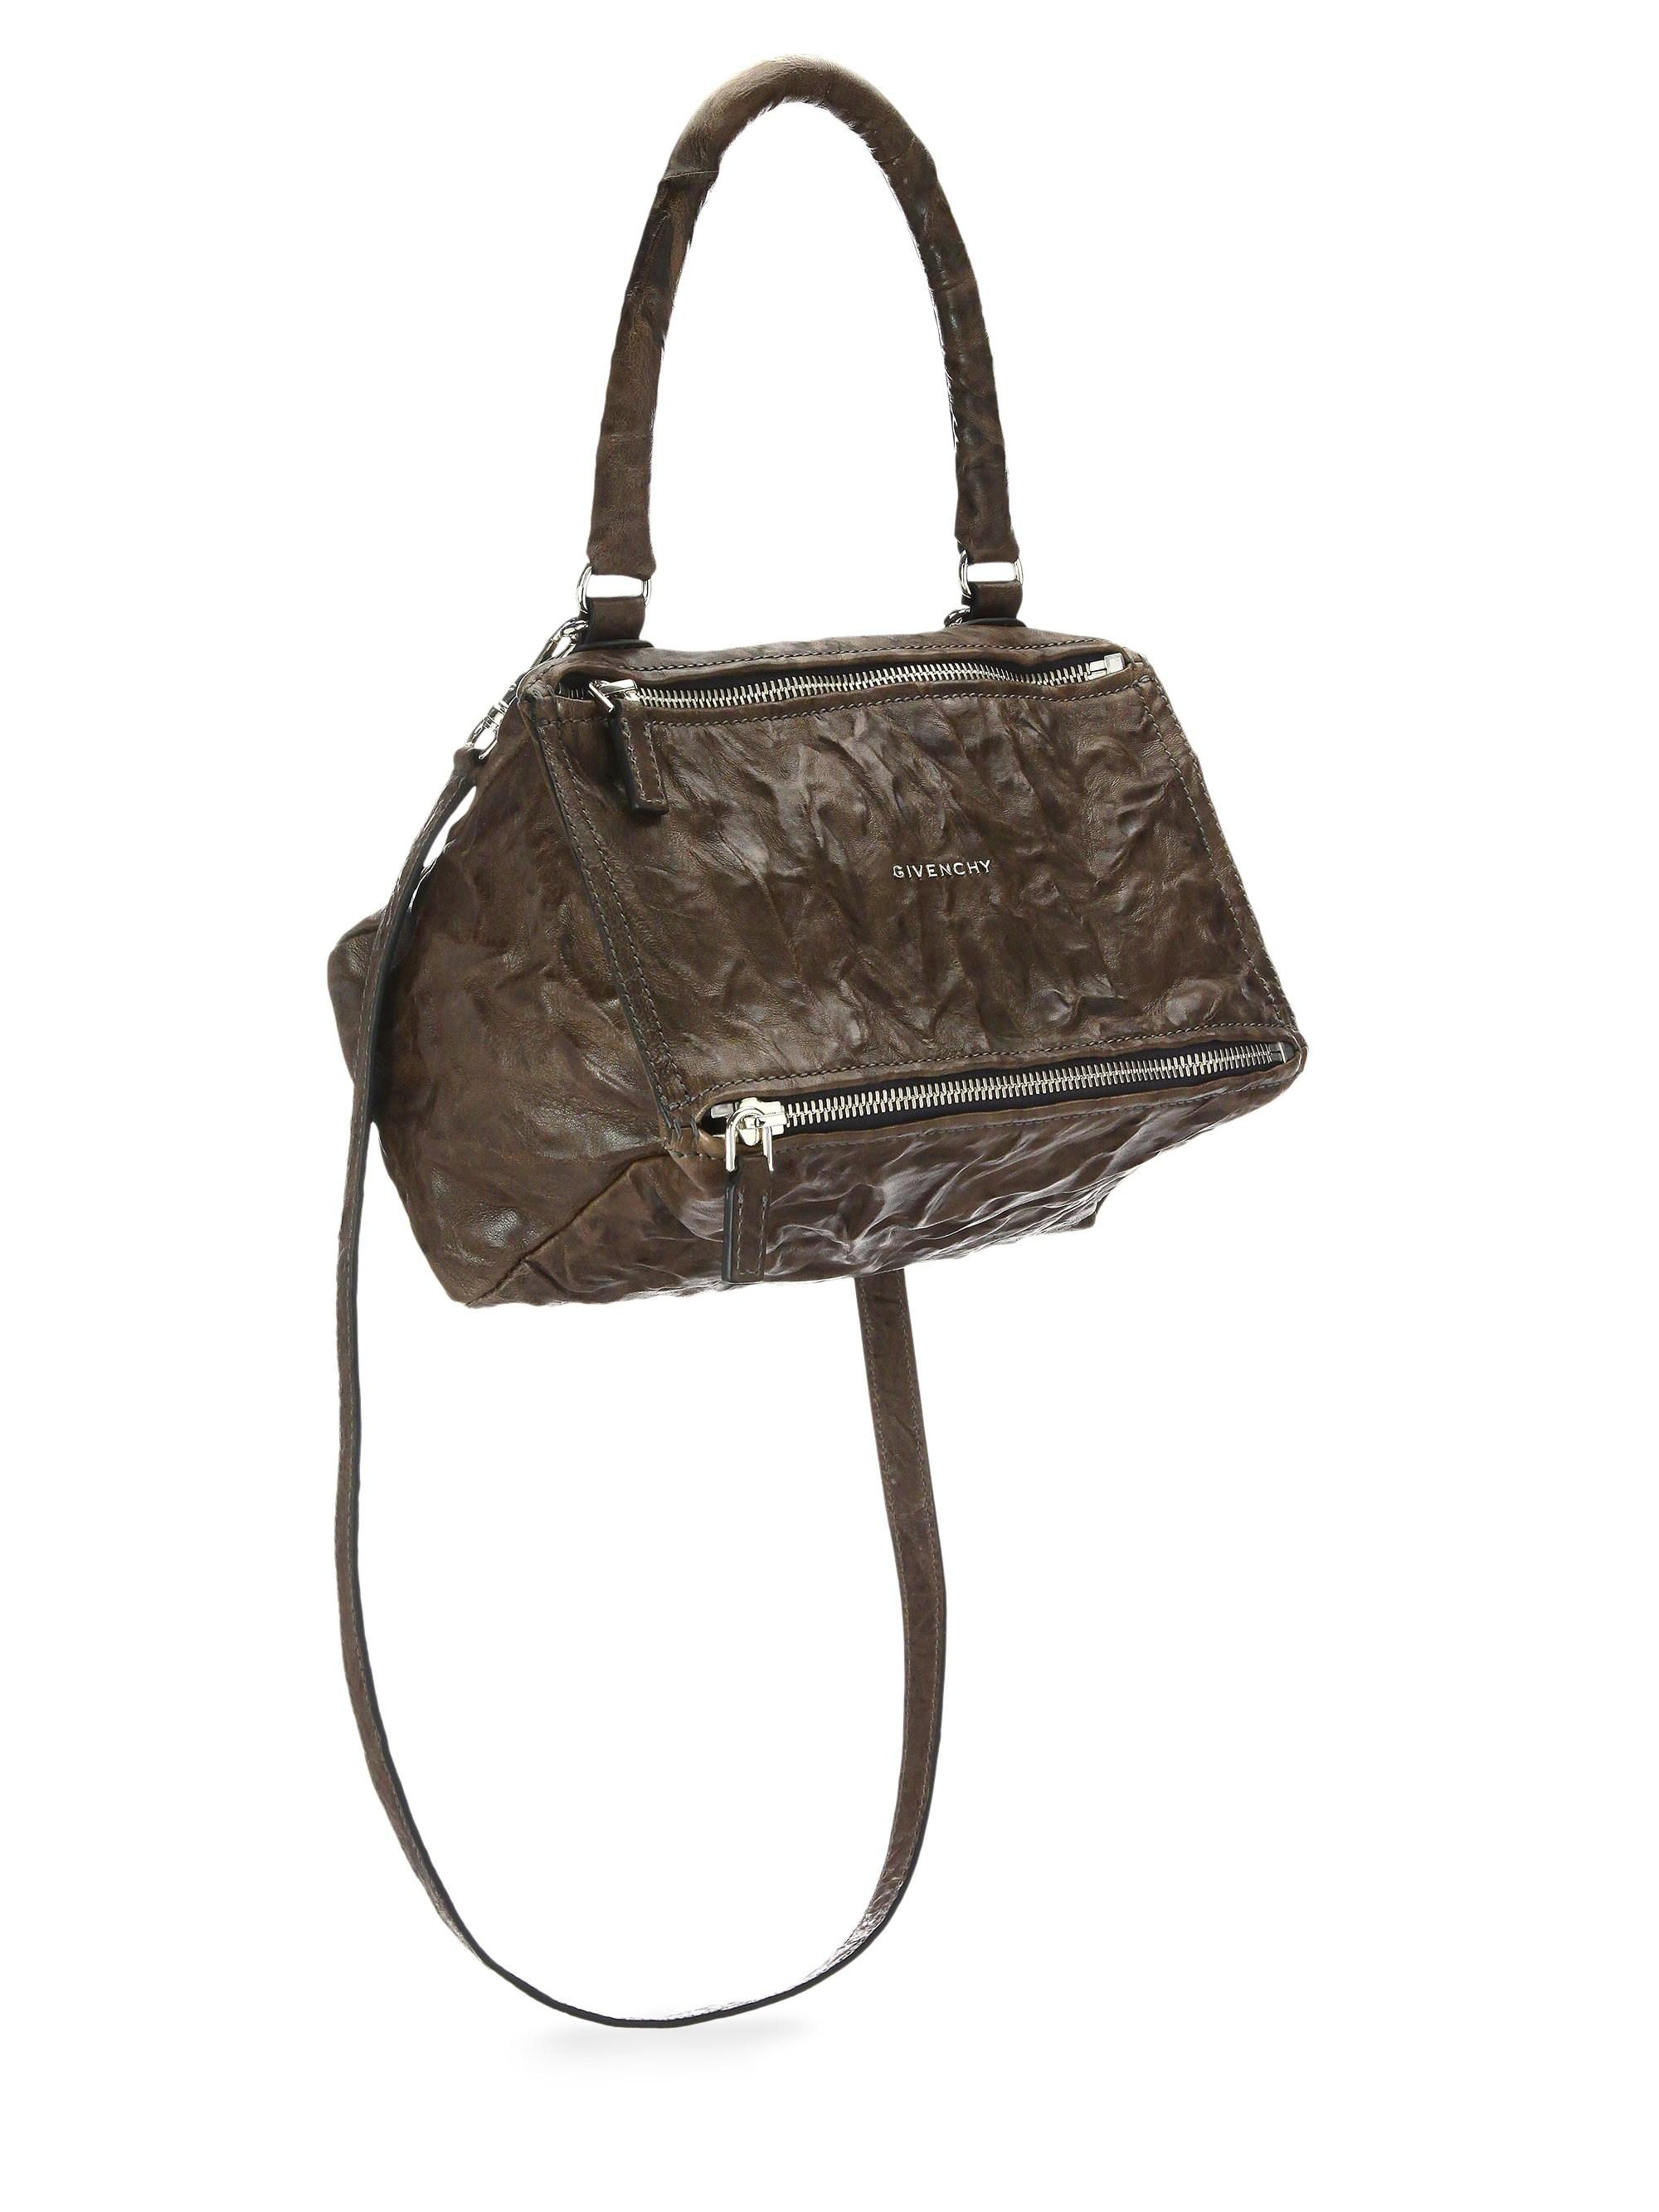 297ffbebd1 Lyst - Givenchy Pandora Small Pepe Leather Shoulder Bag in Brown